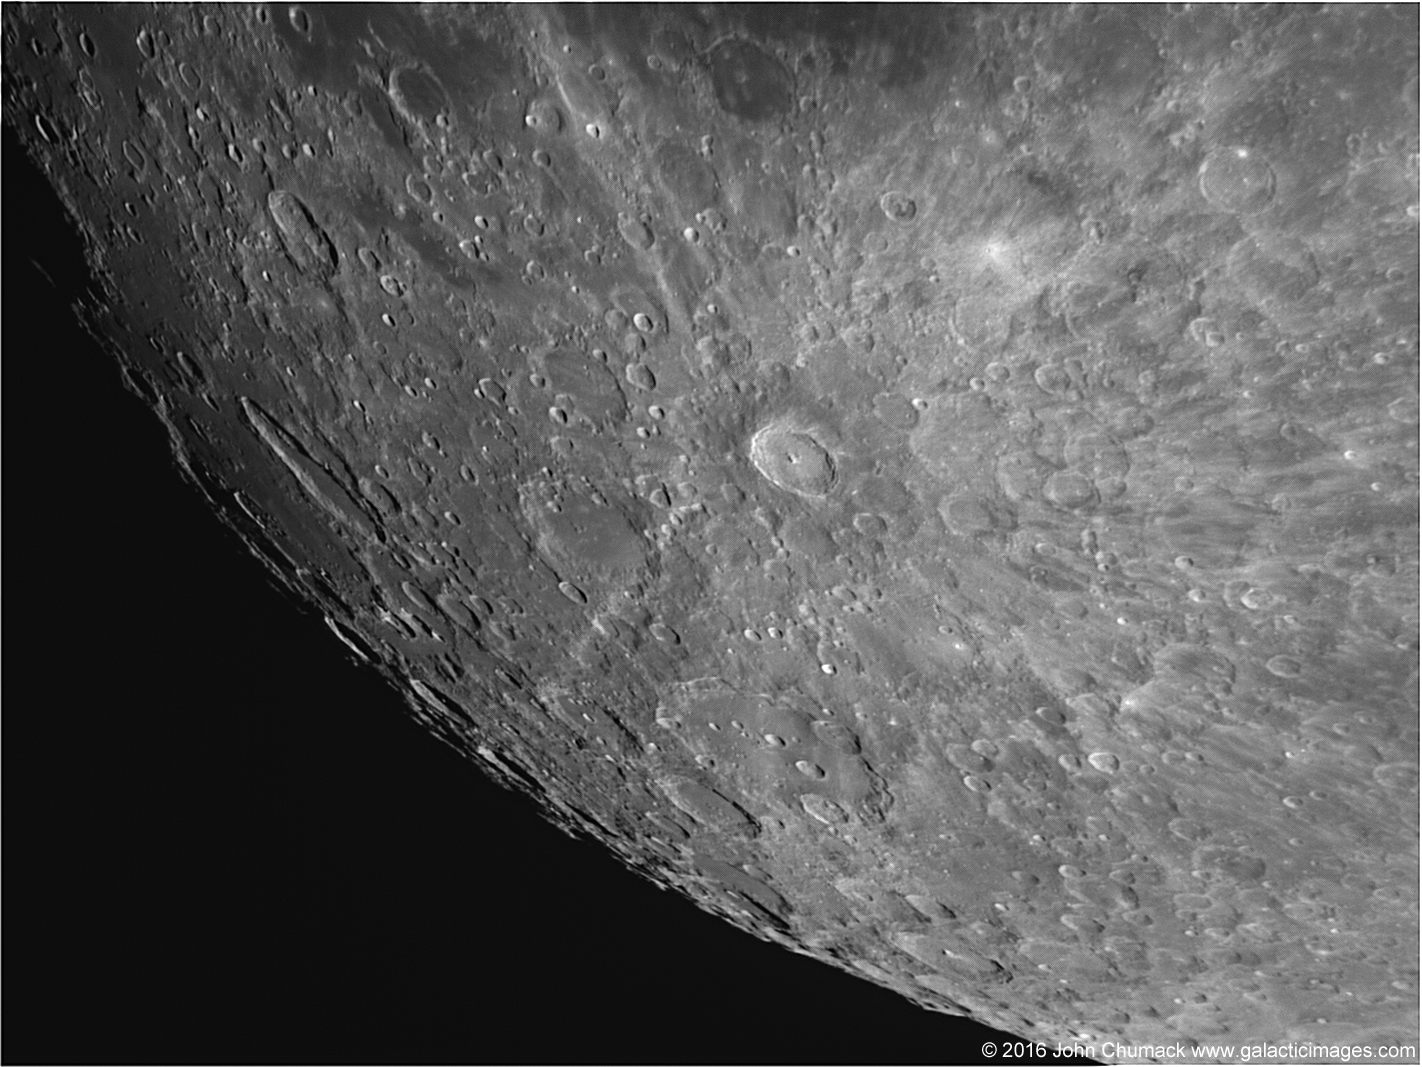 Wow! Moon's Young Crater Seen in Close-Up View (Photo)